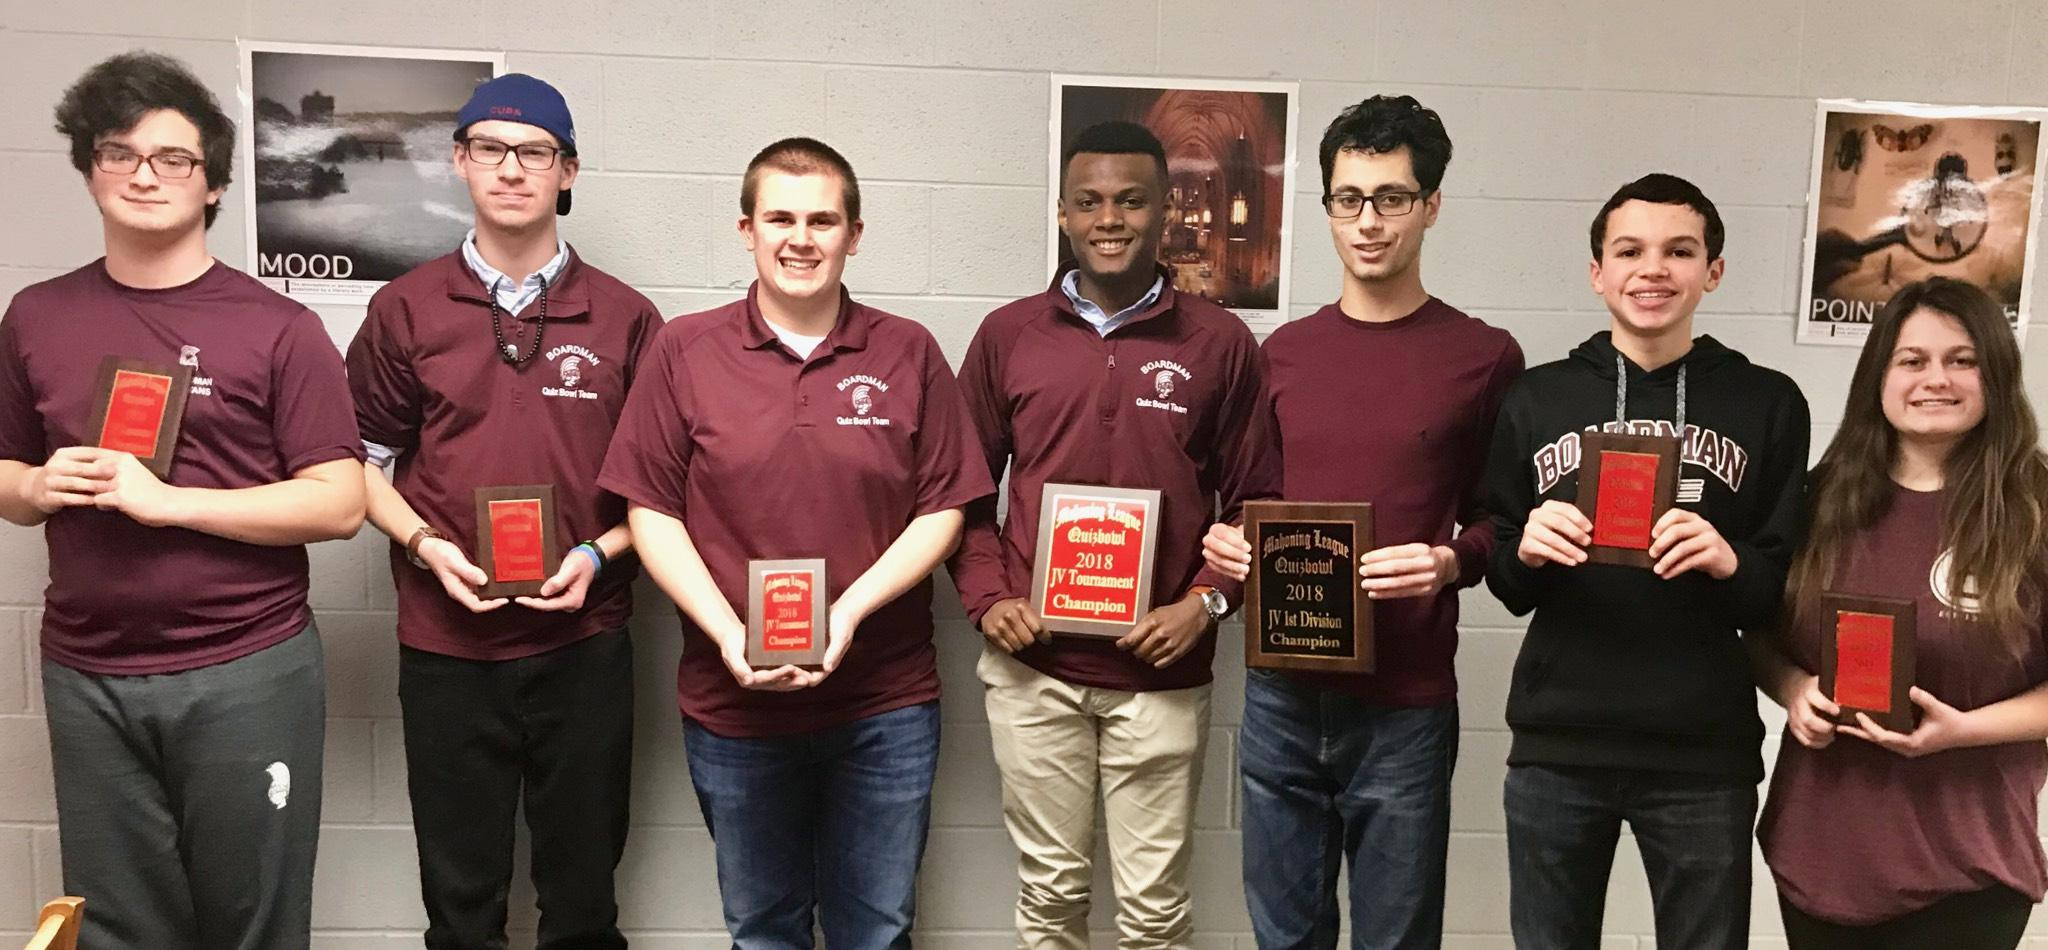 Quiz Bowl JV team with plaques